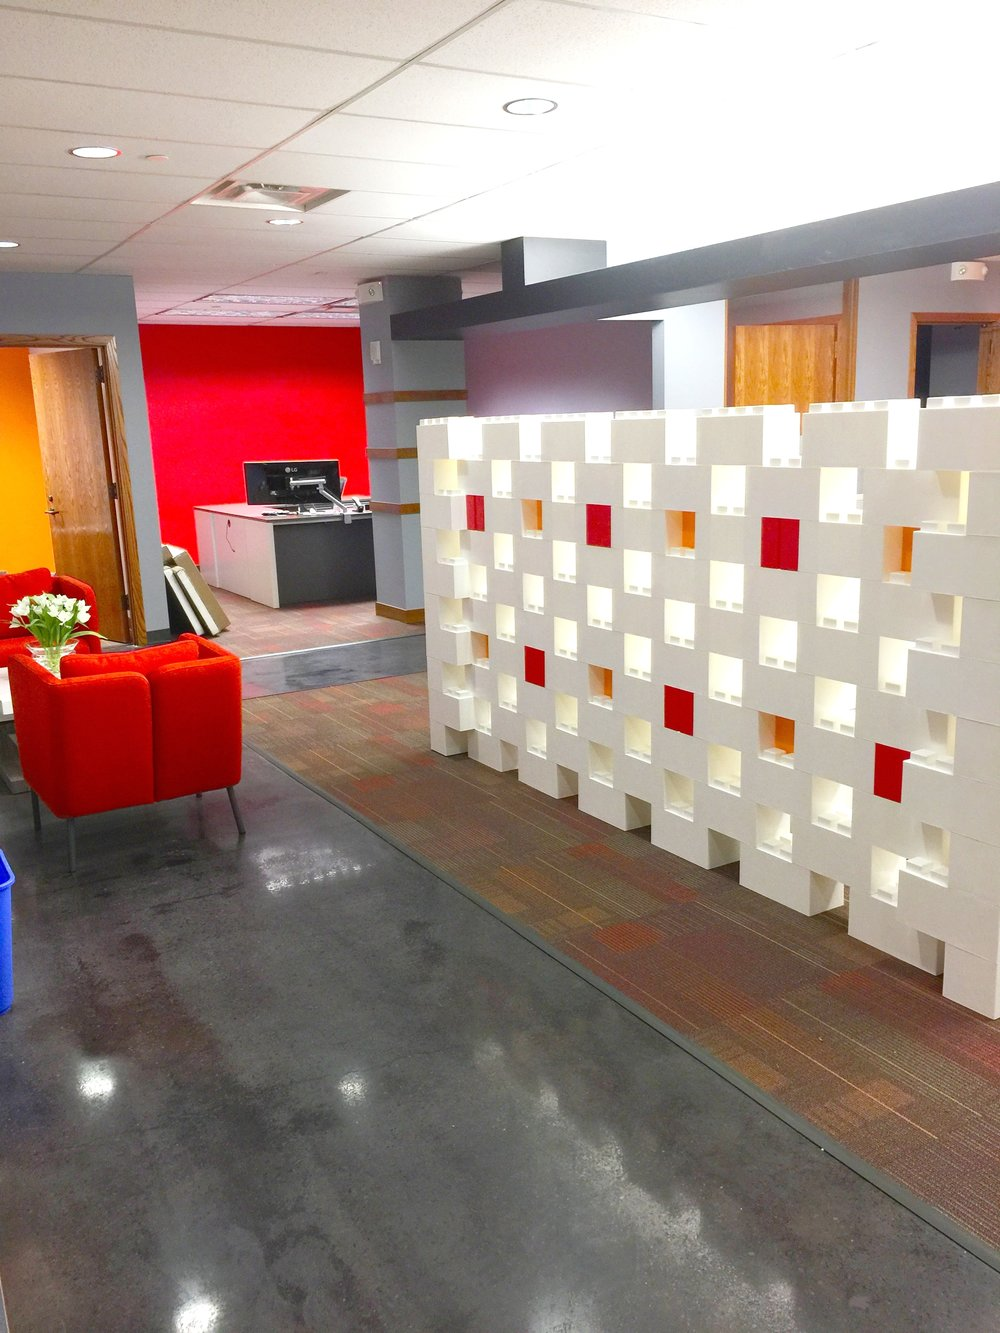 Office Cubicles Walls Divider Add Privacy To Office Spaces With Unique Designs That Match Office Decor Pinterest Office Walls Partitions Everblock